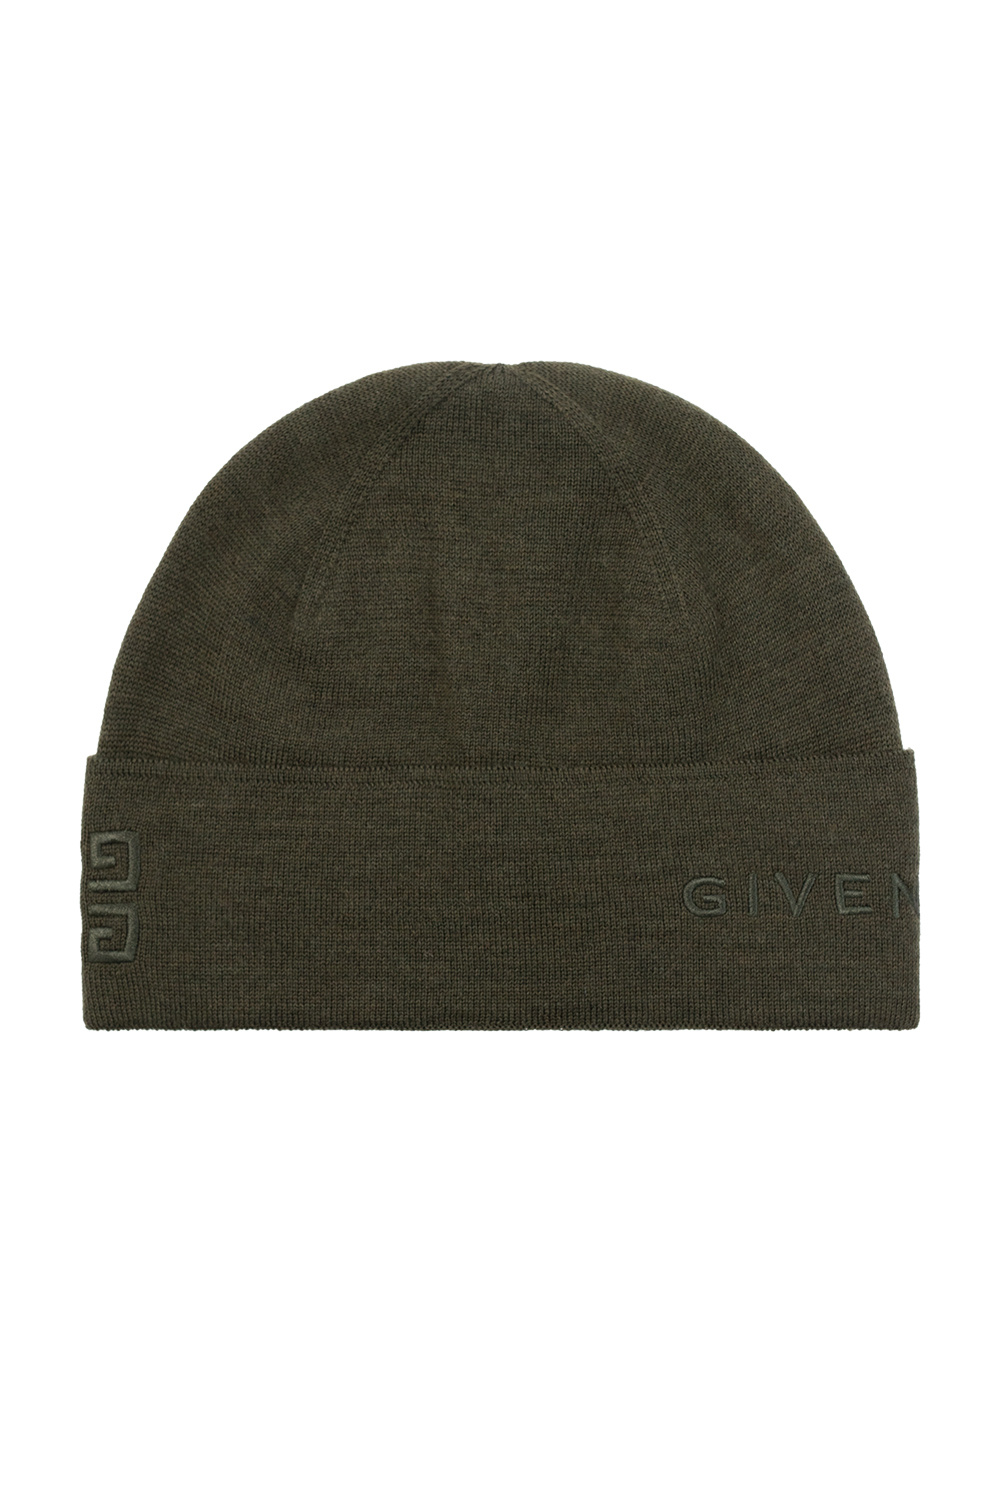 Givenchy Wool hat with logo